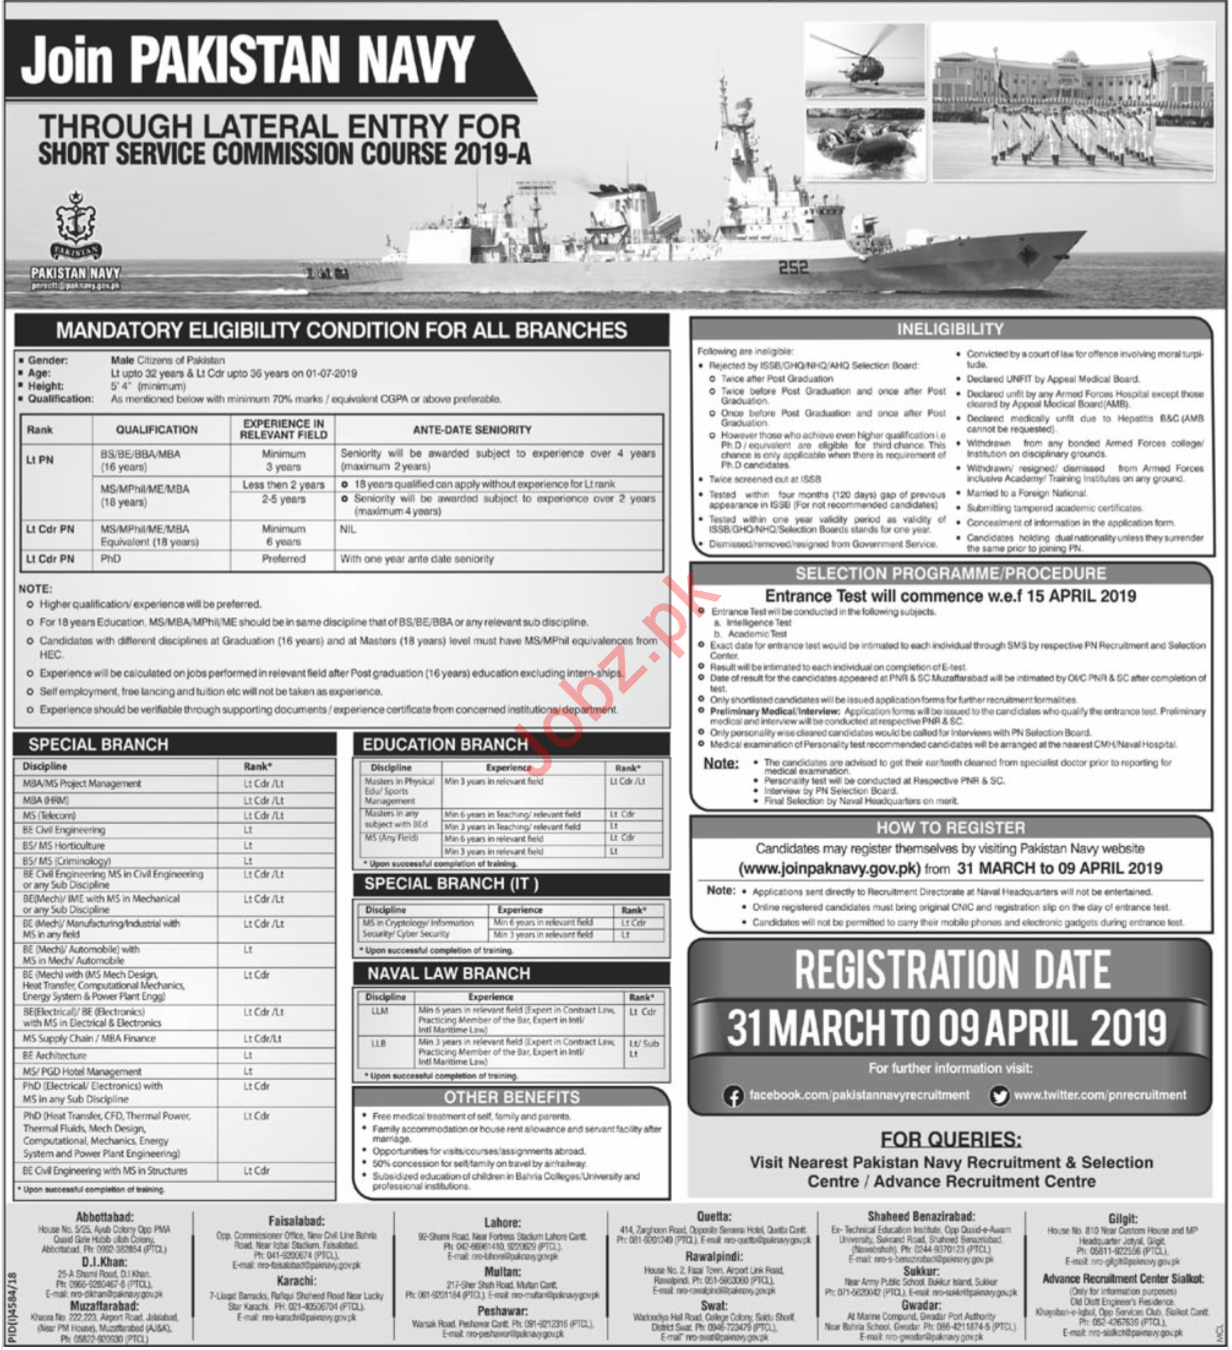 Join Pakistan Navy Through Lateral Entry for SSC COURSE